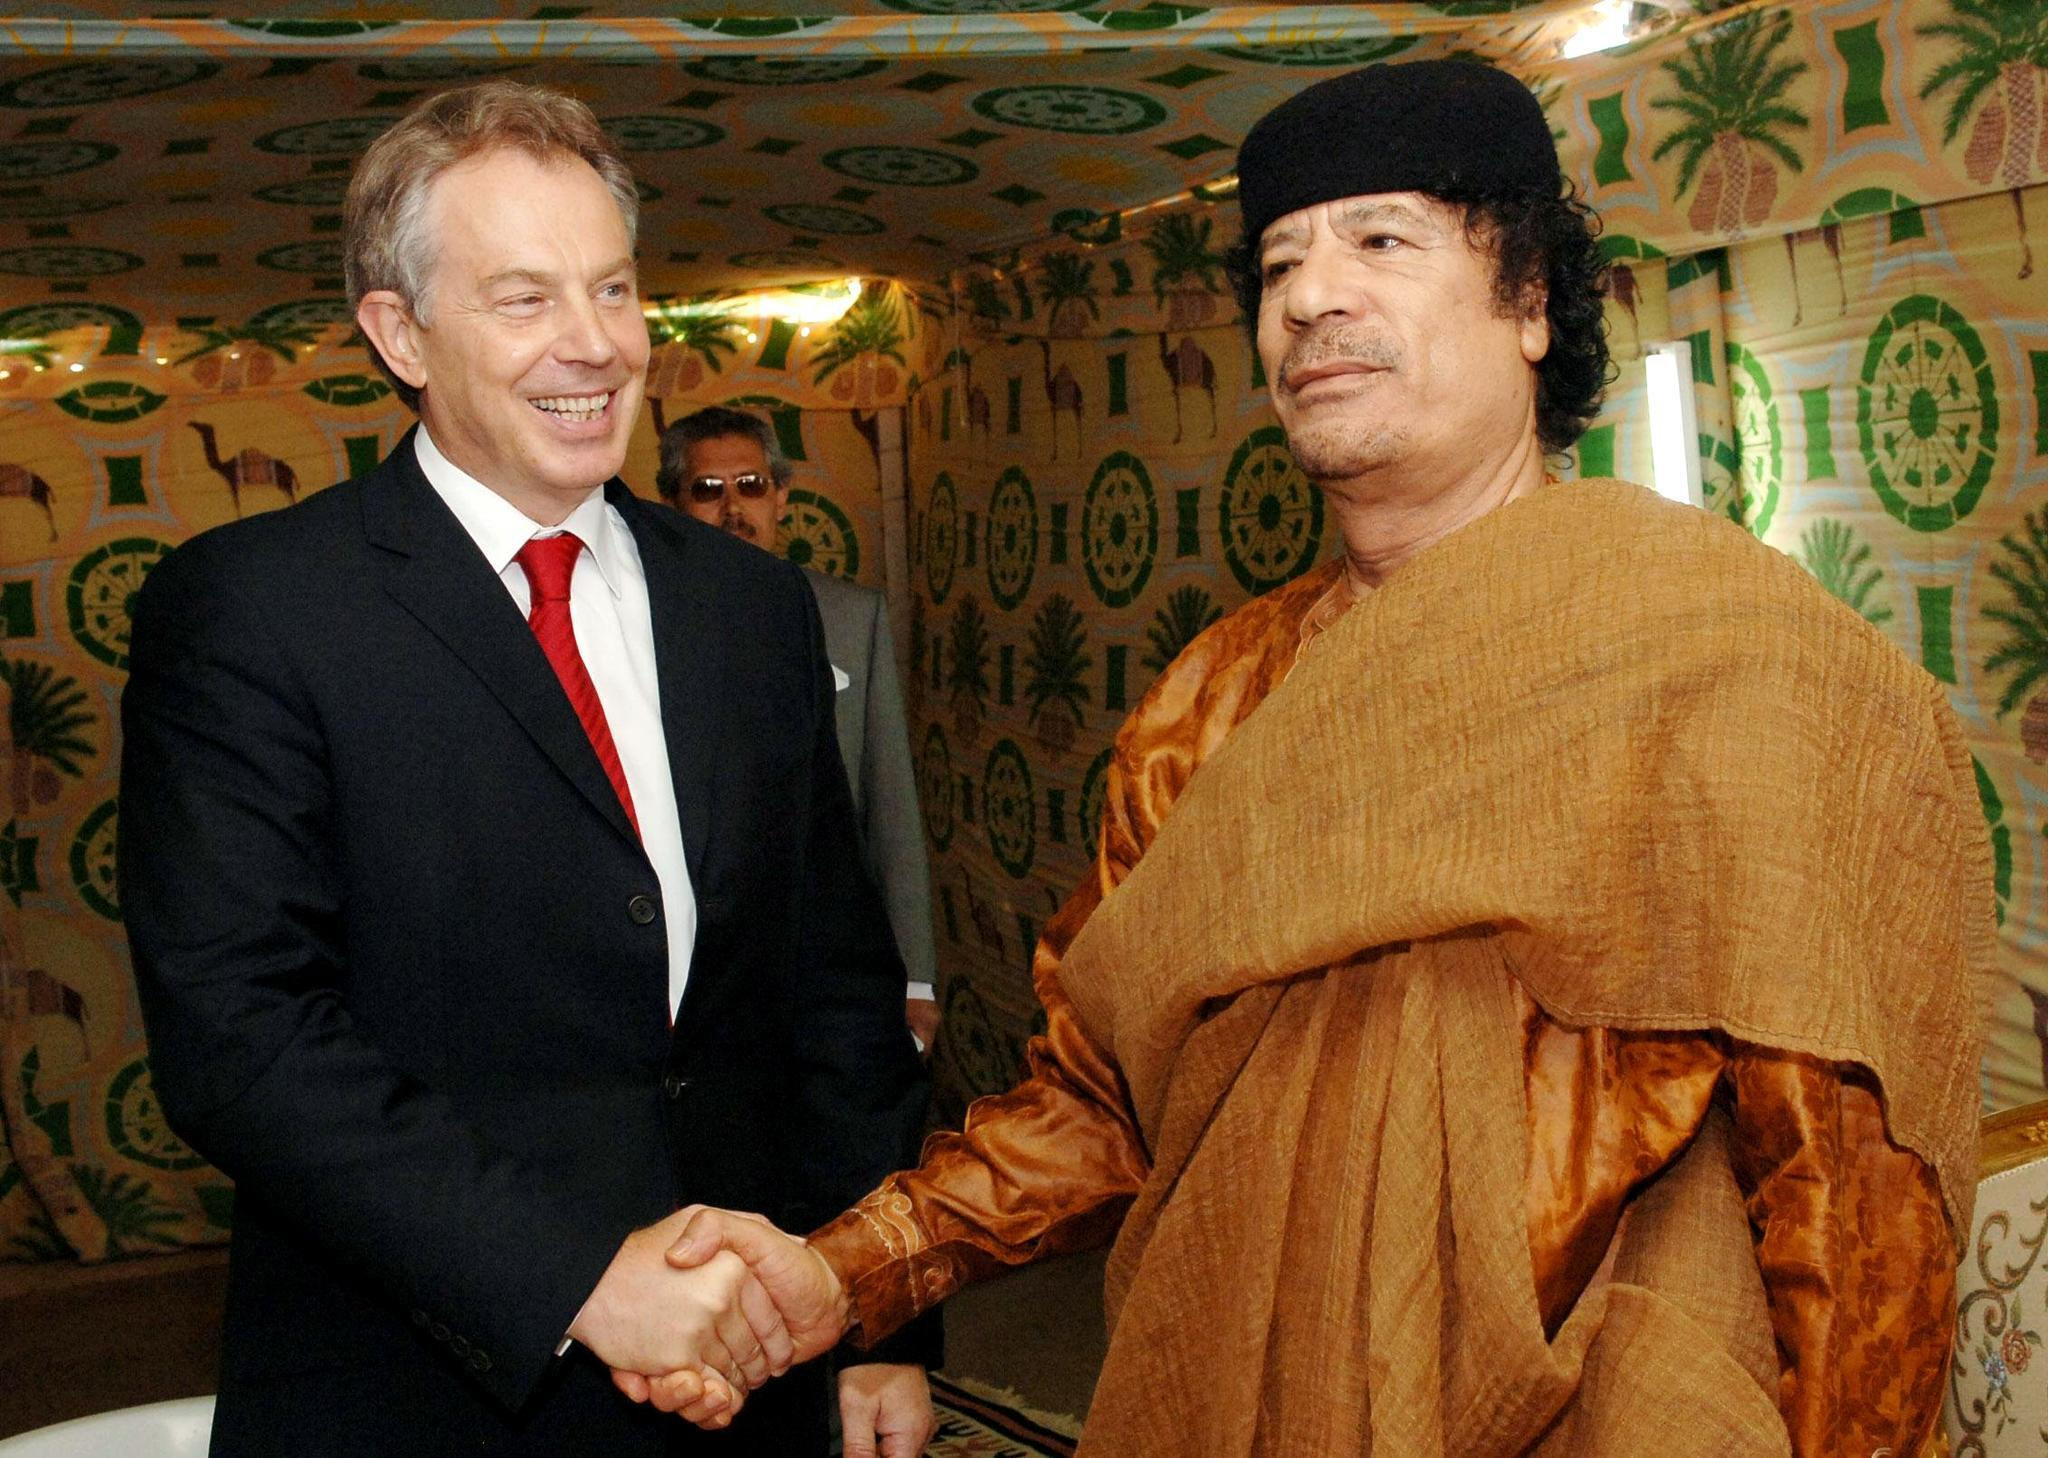 Prime Minister Tony Blair meeting Libyan leader Colonel Muammar Gaddafi at his desert base outside Sirte, south of Tripoli on May 29, 2007.